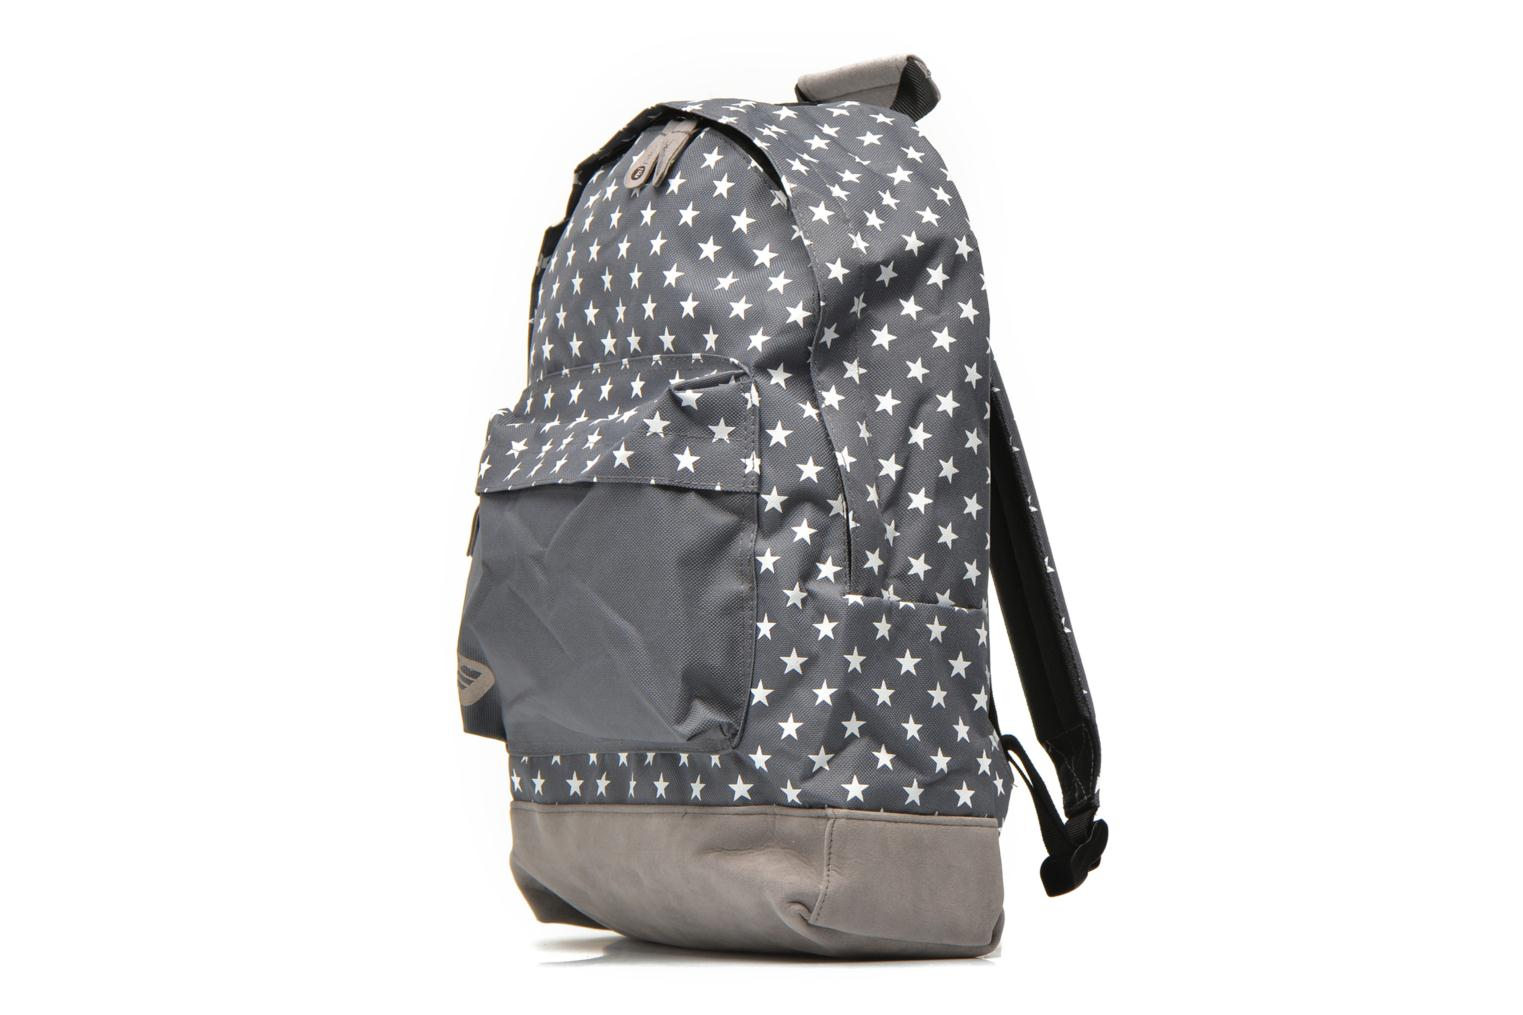 Rugzakken Mi-Pac All stars Backpack Grijs model